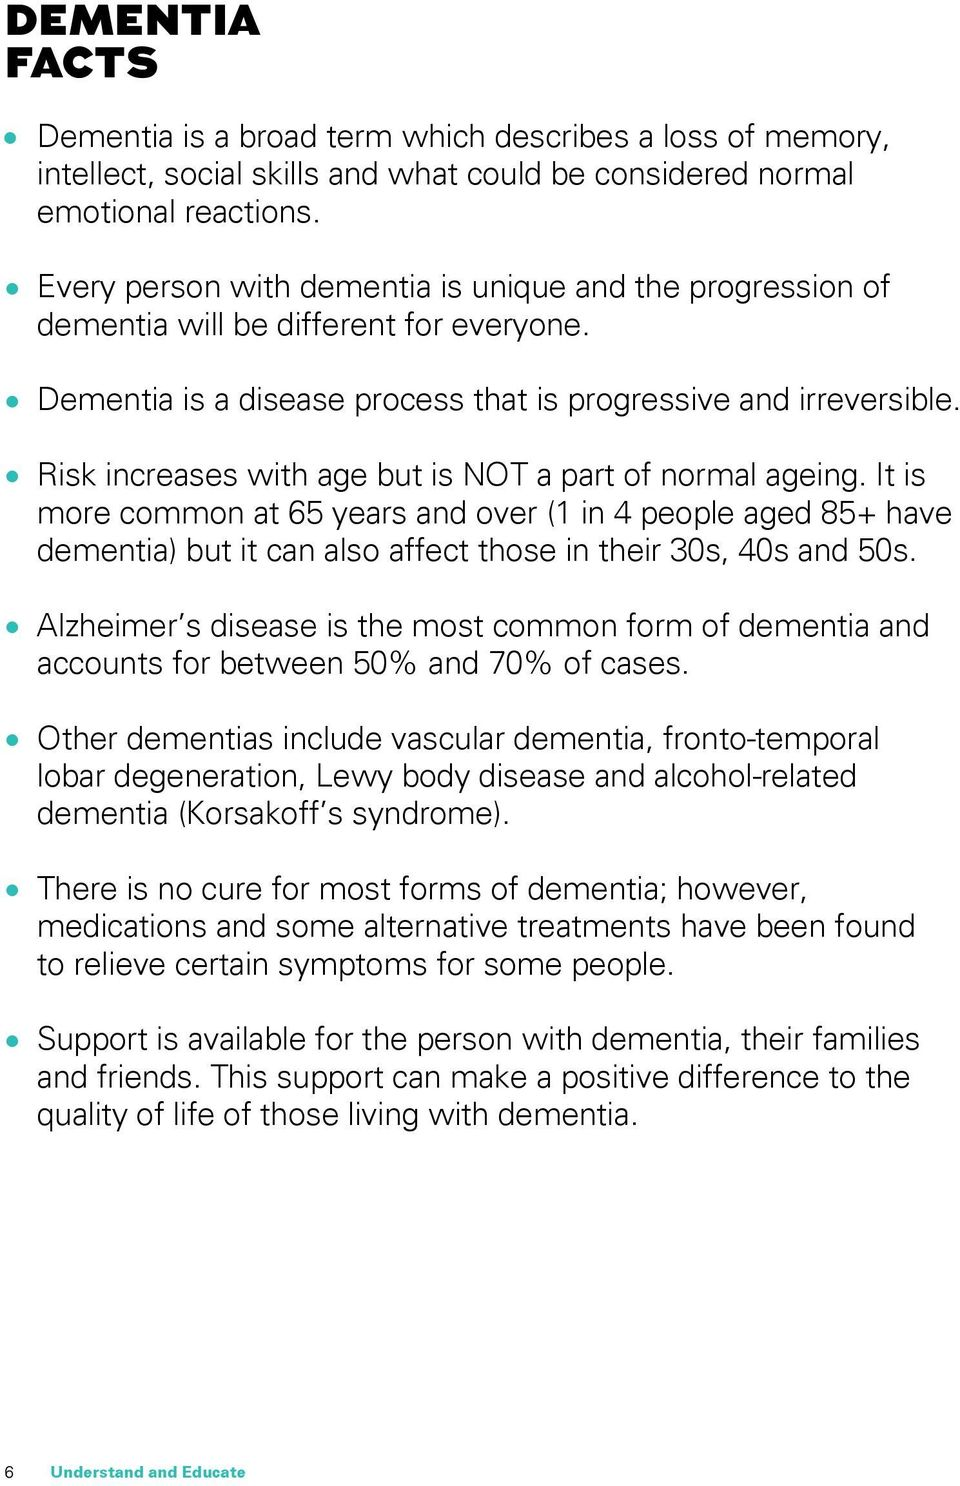 Risk increases with age but is NOT a part of normal ageing. It is more common at 65 years and over (1 in 4 people aged 85+ have dementia) but it can also affect those in their 30s, 40s and 50s.